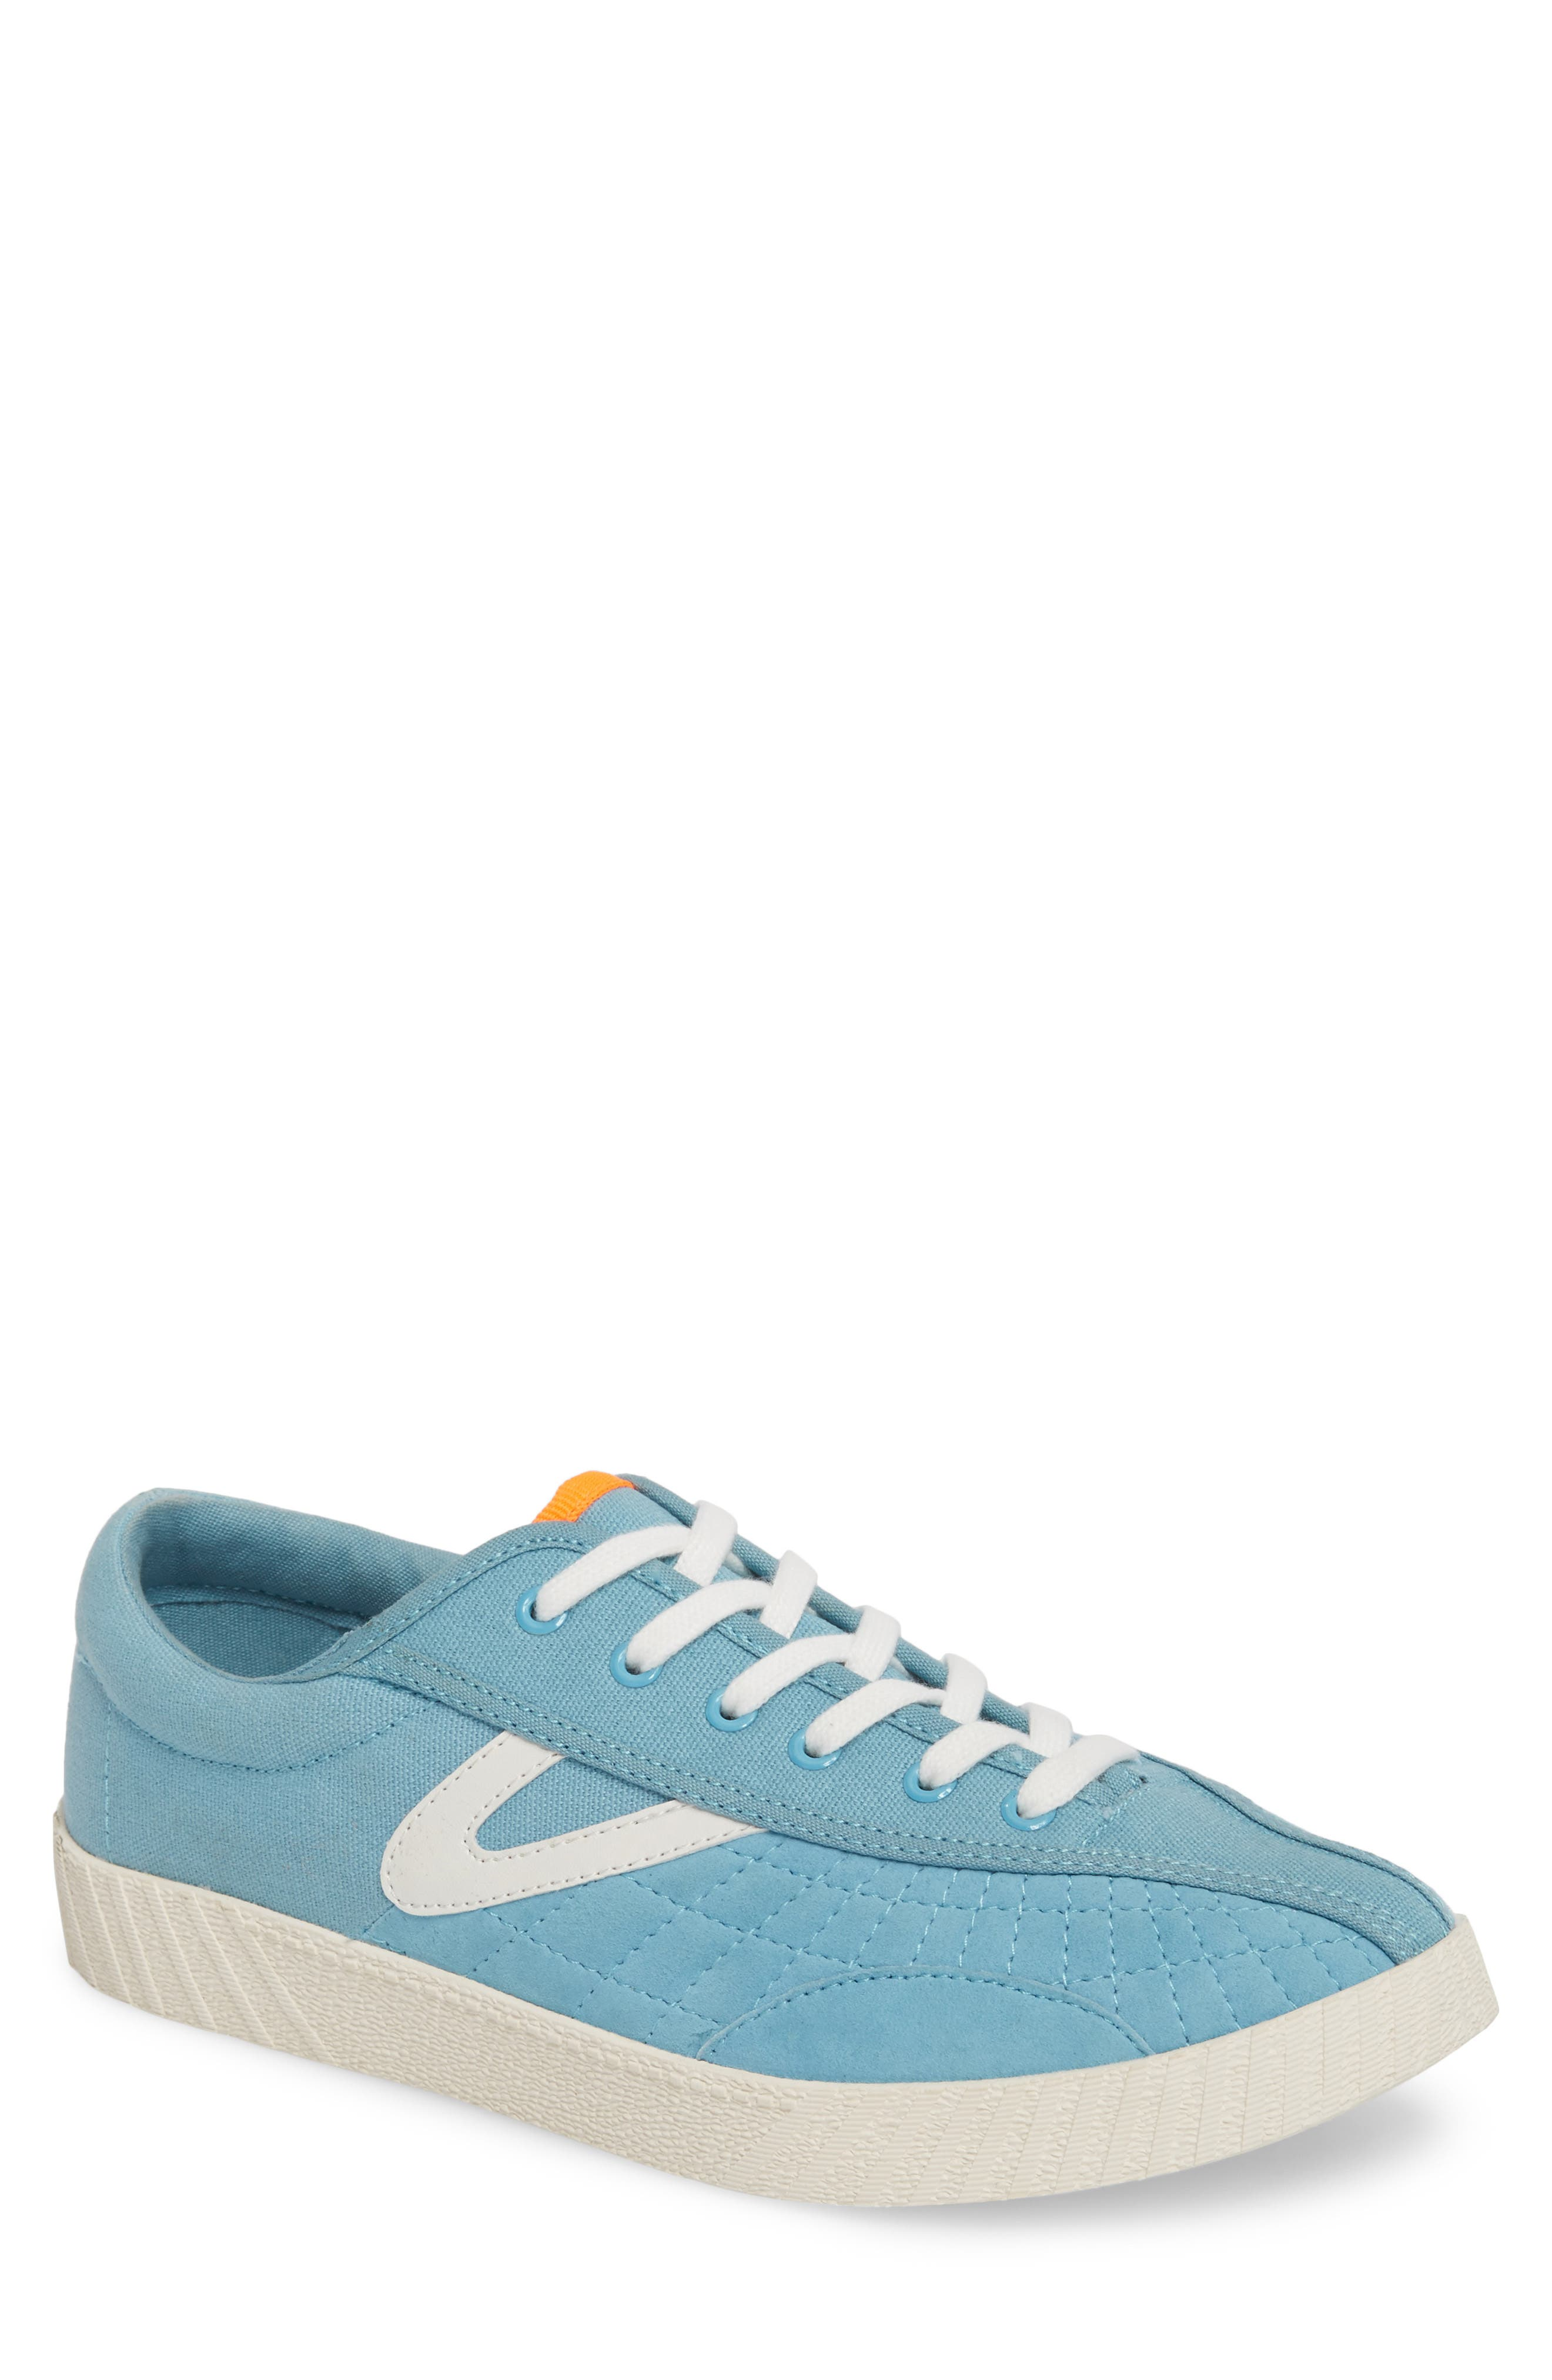 Tretorn Men's Andre 3000 Nylite Low Top Sneaker